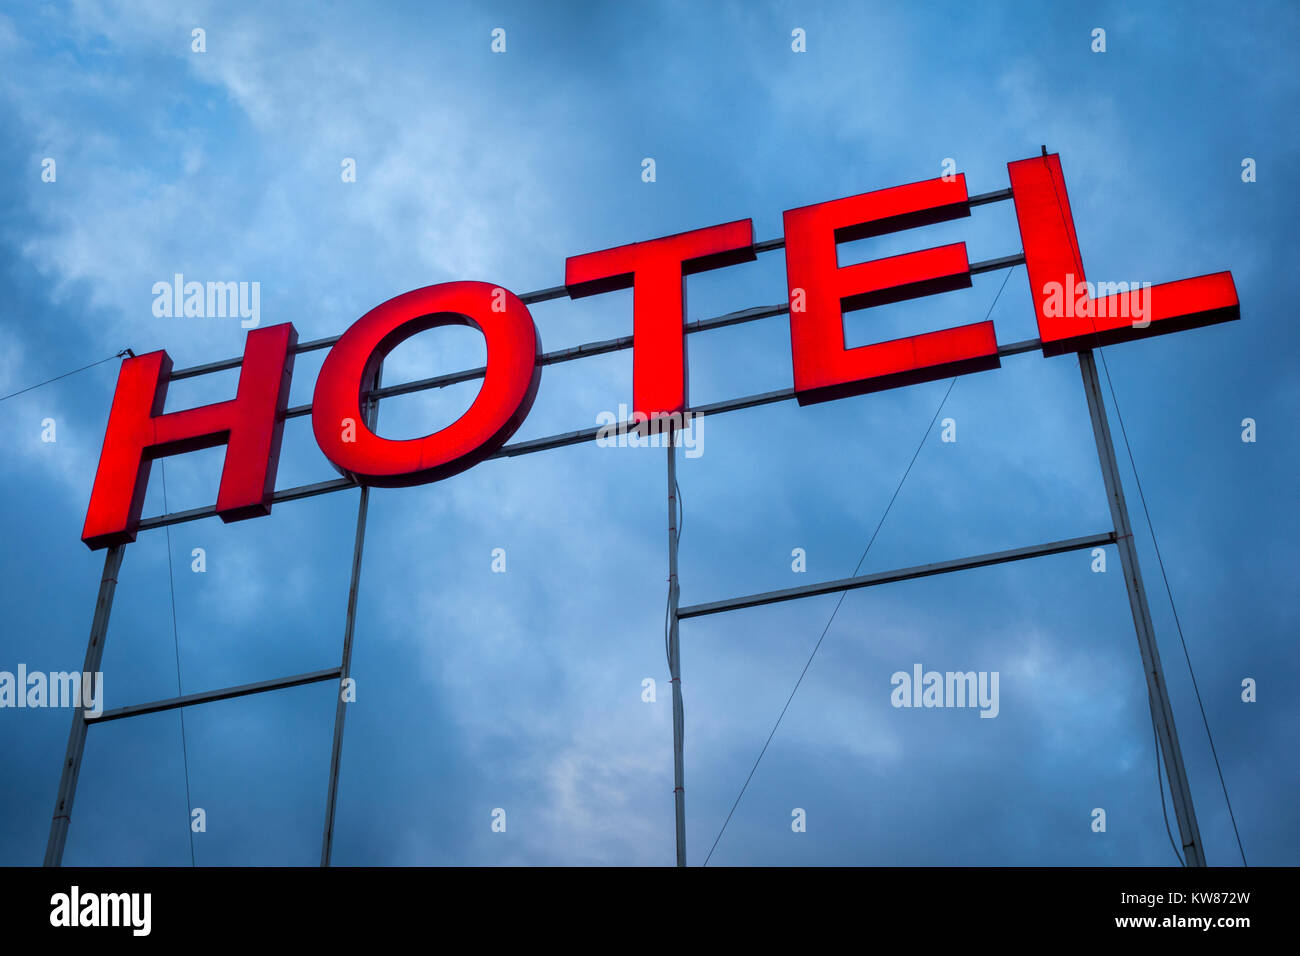 Large illuminated hotel letters sign against a blue sky - Stock Image